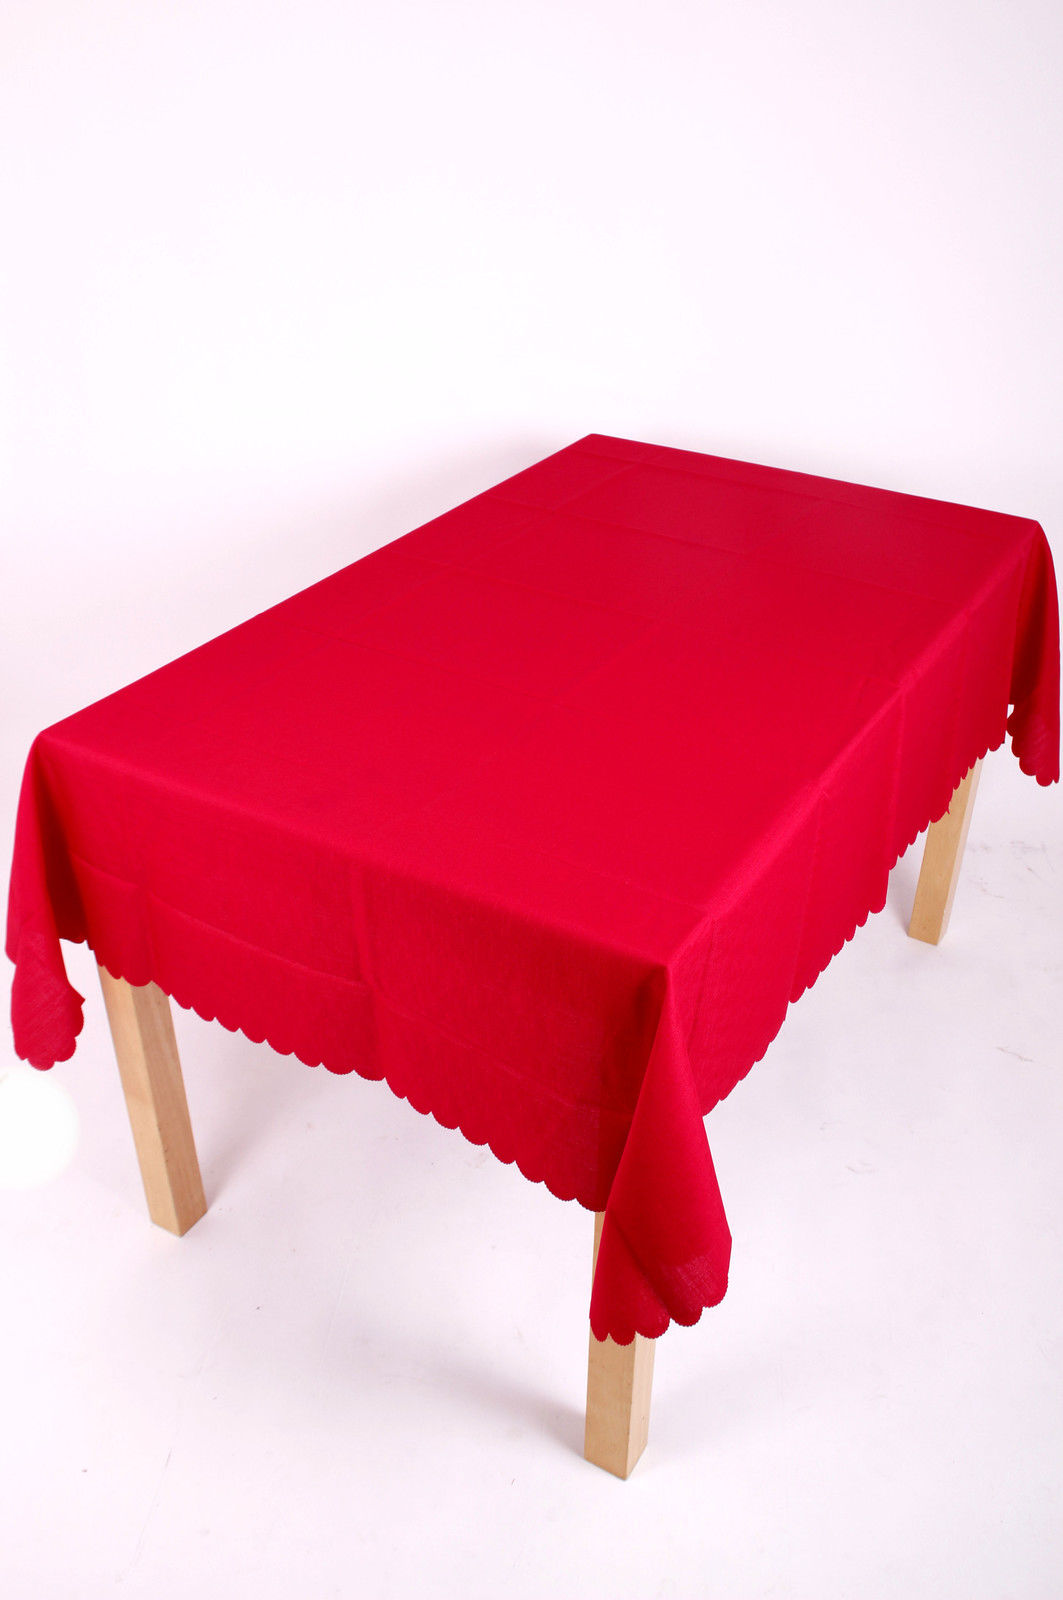 Shell Tablecloth Red 137x178cm Oval (54x70inch)